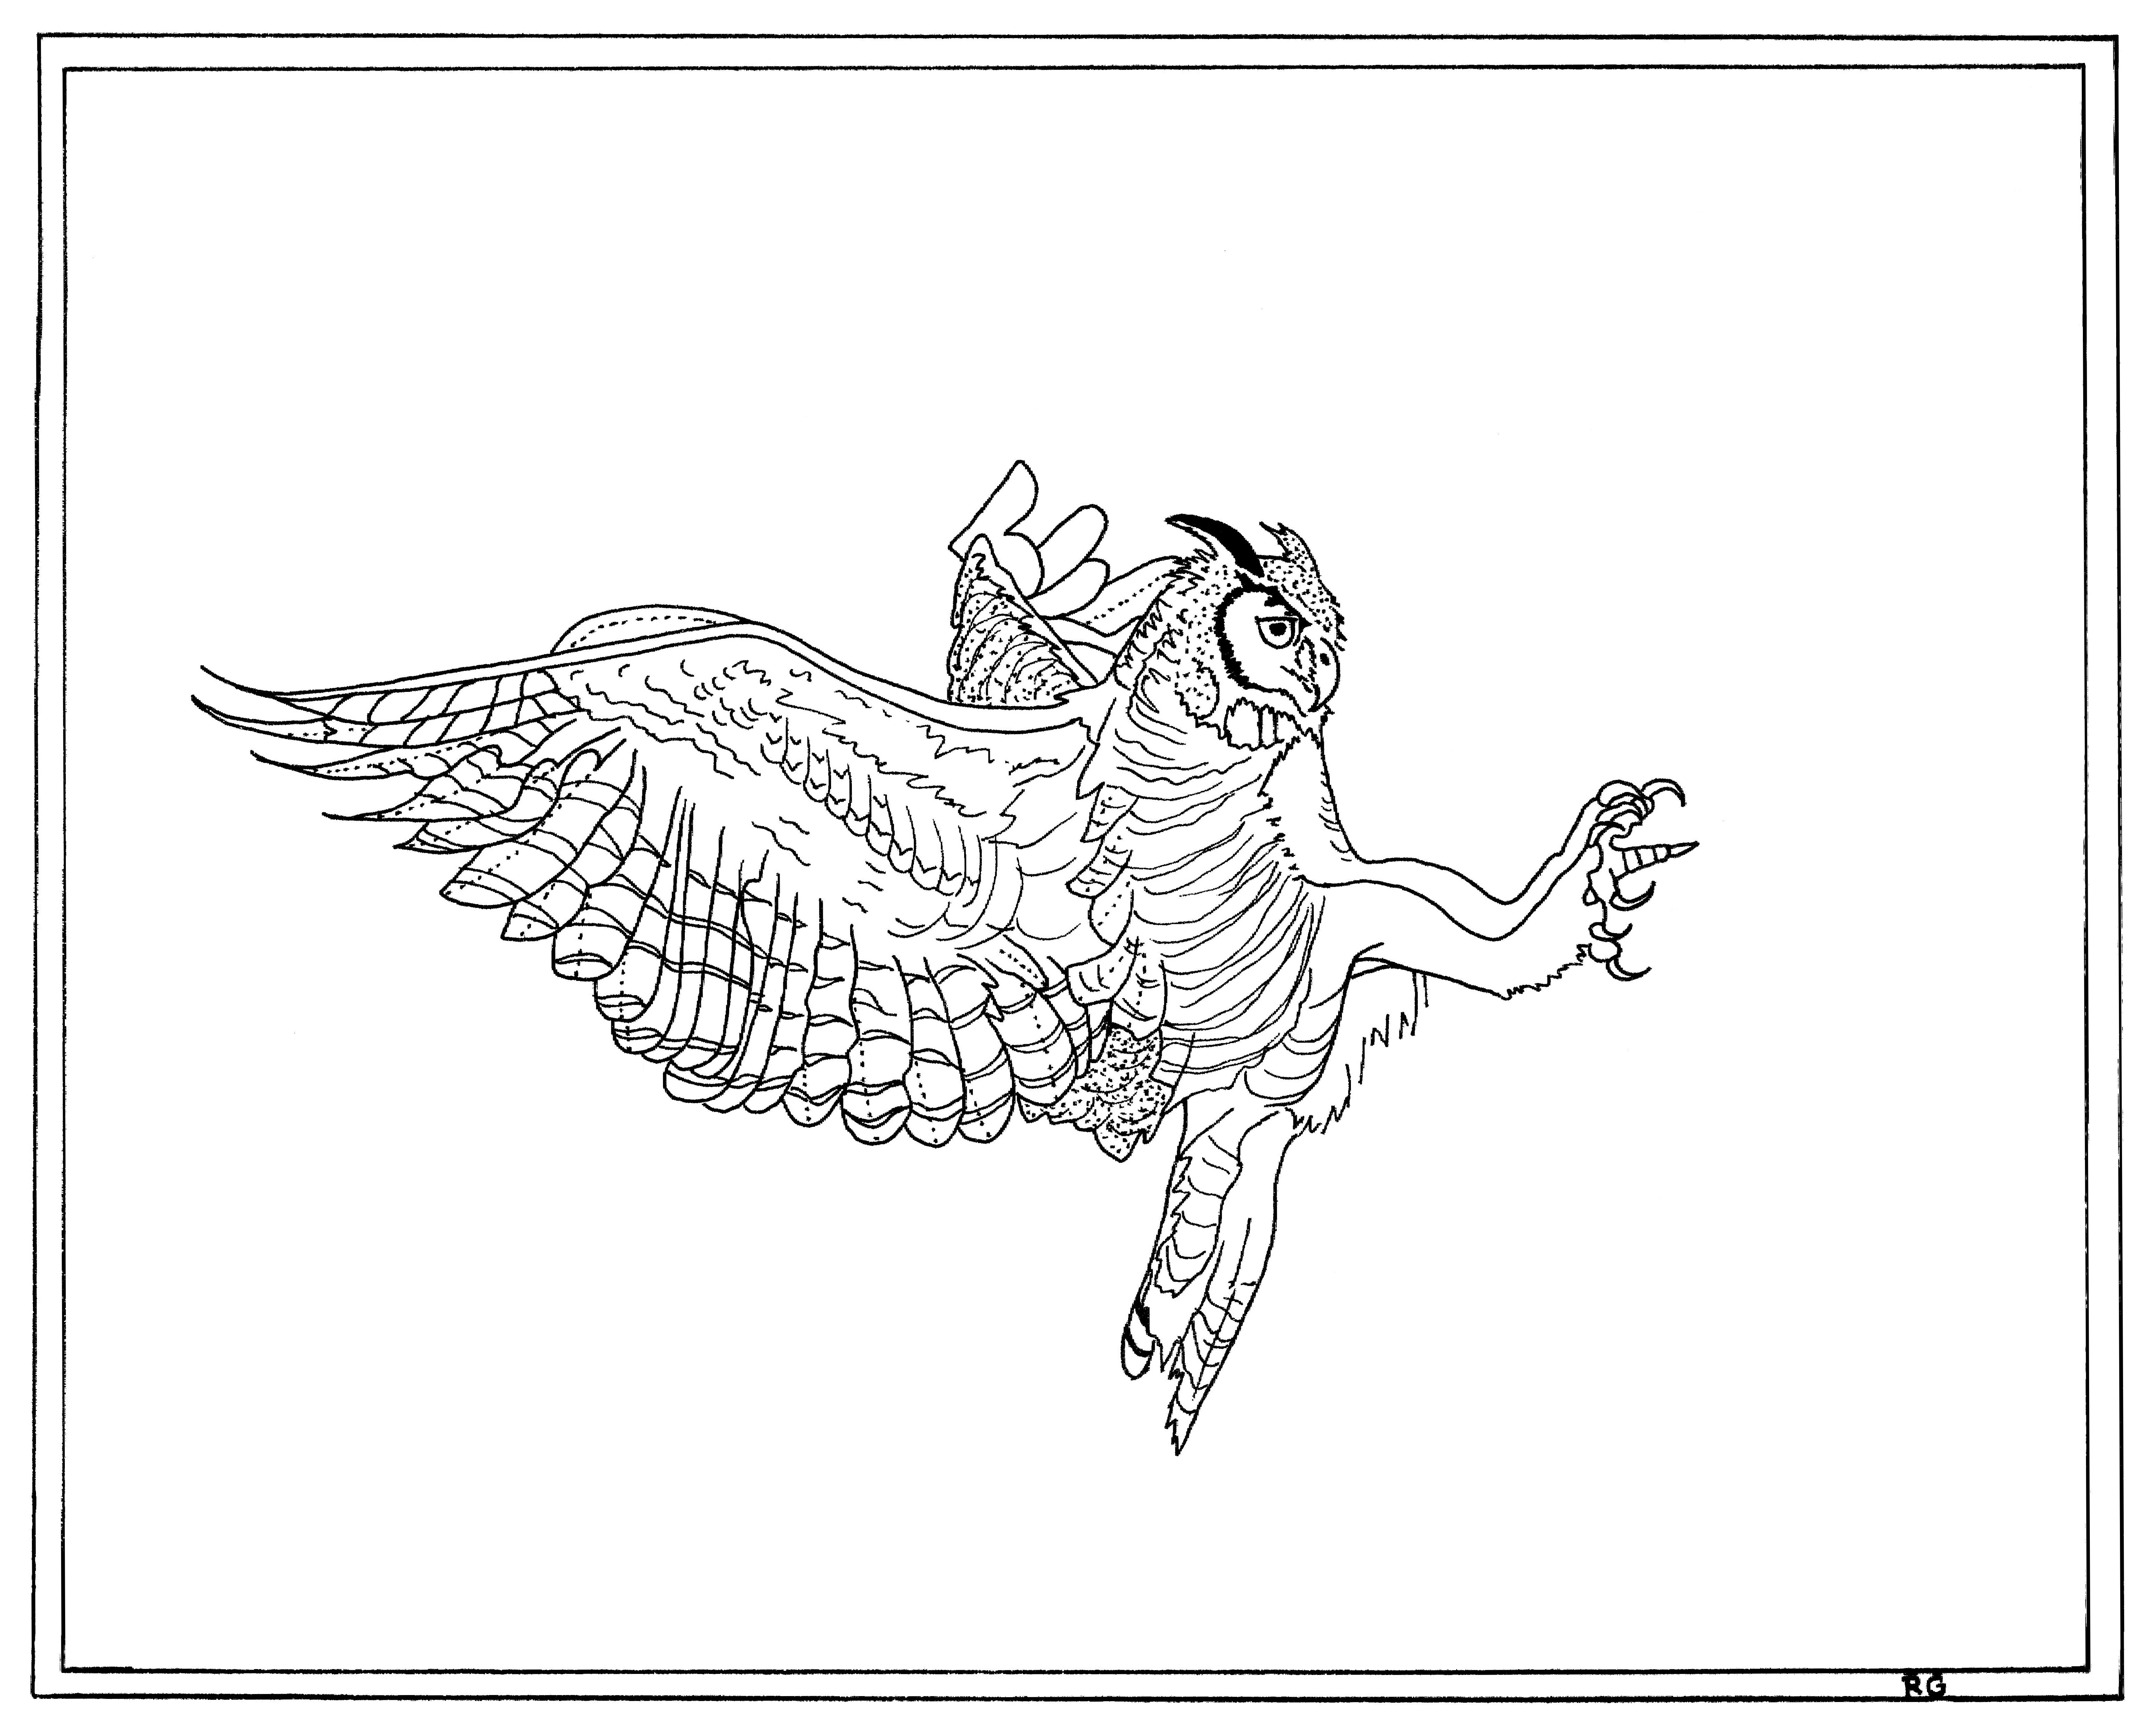 Great Horned Owl Line Drawing